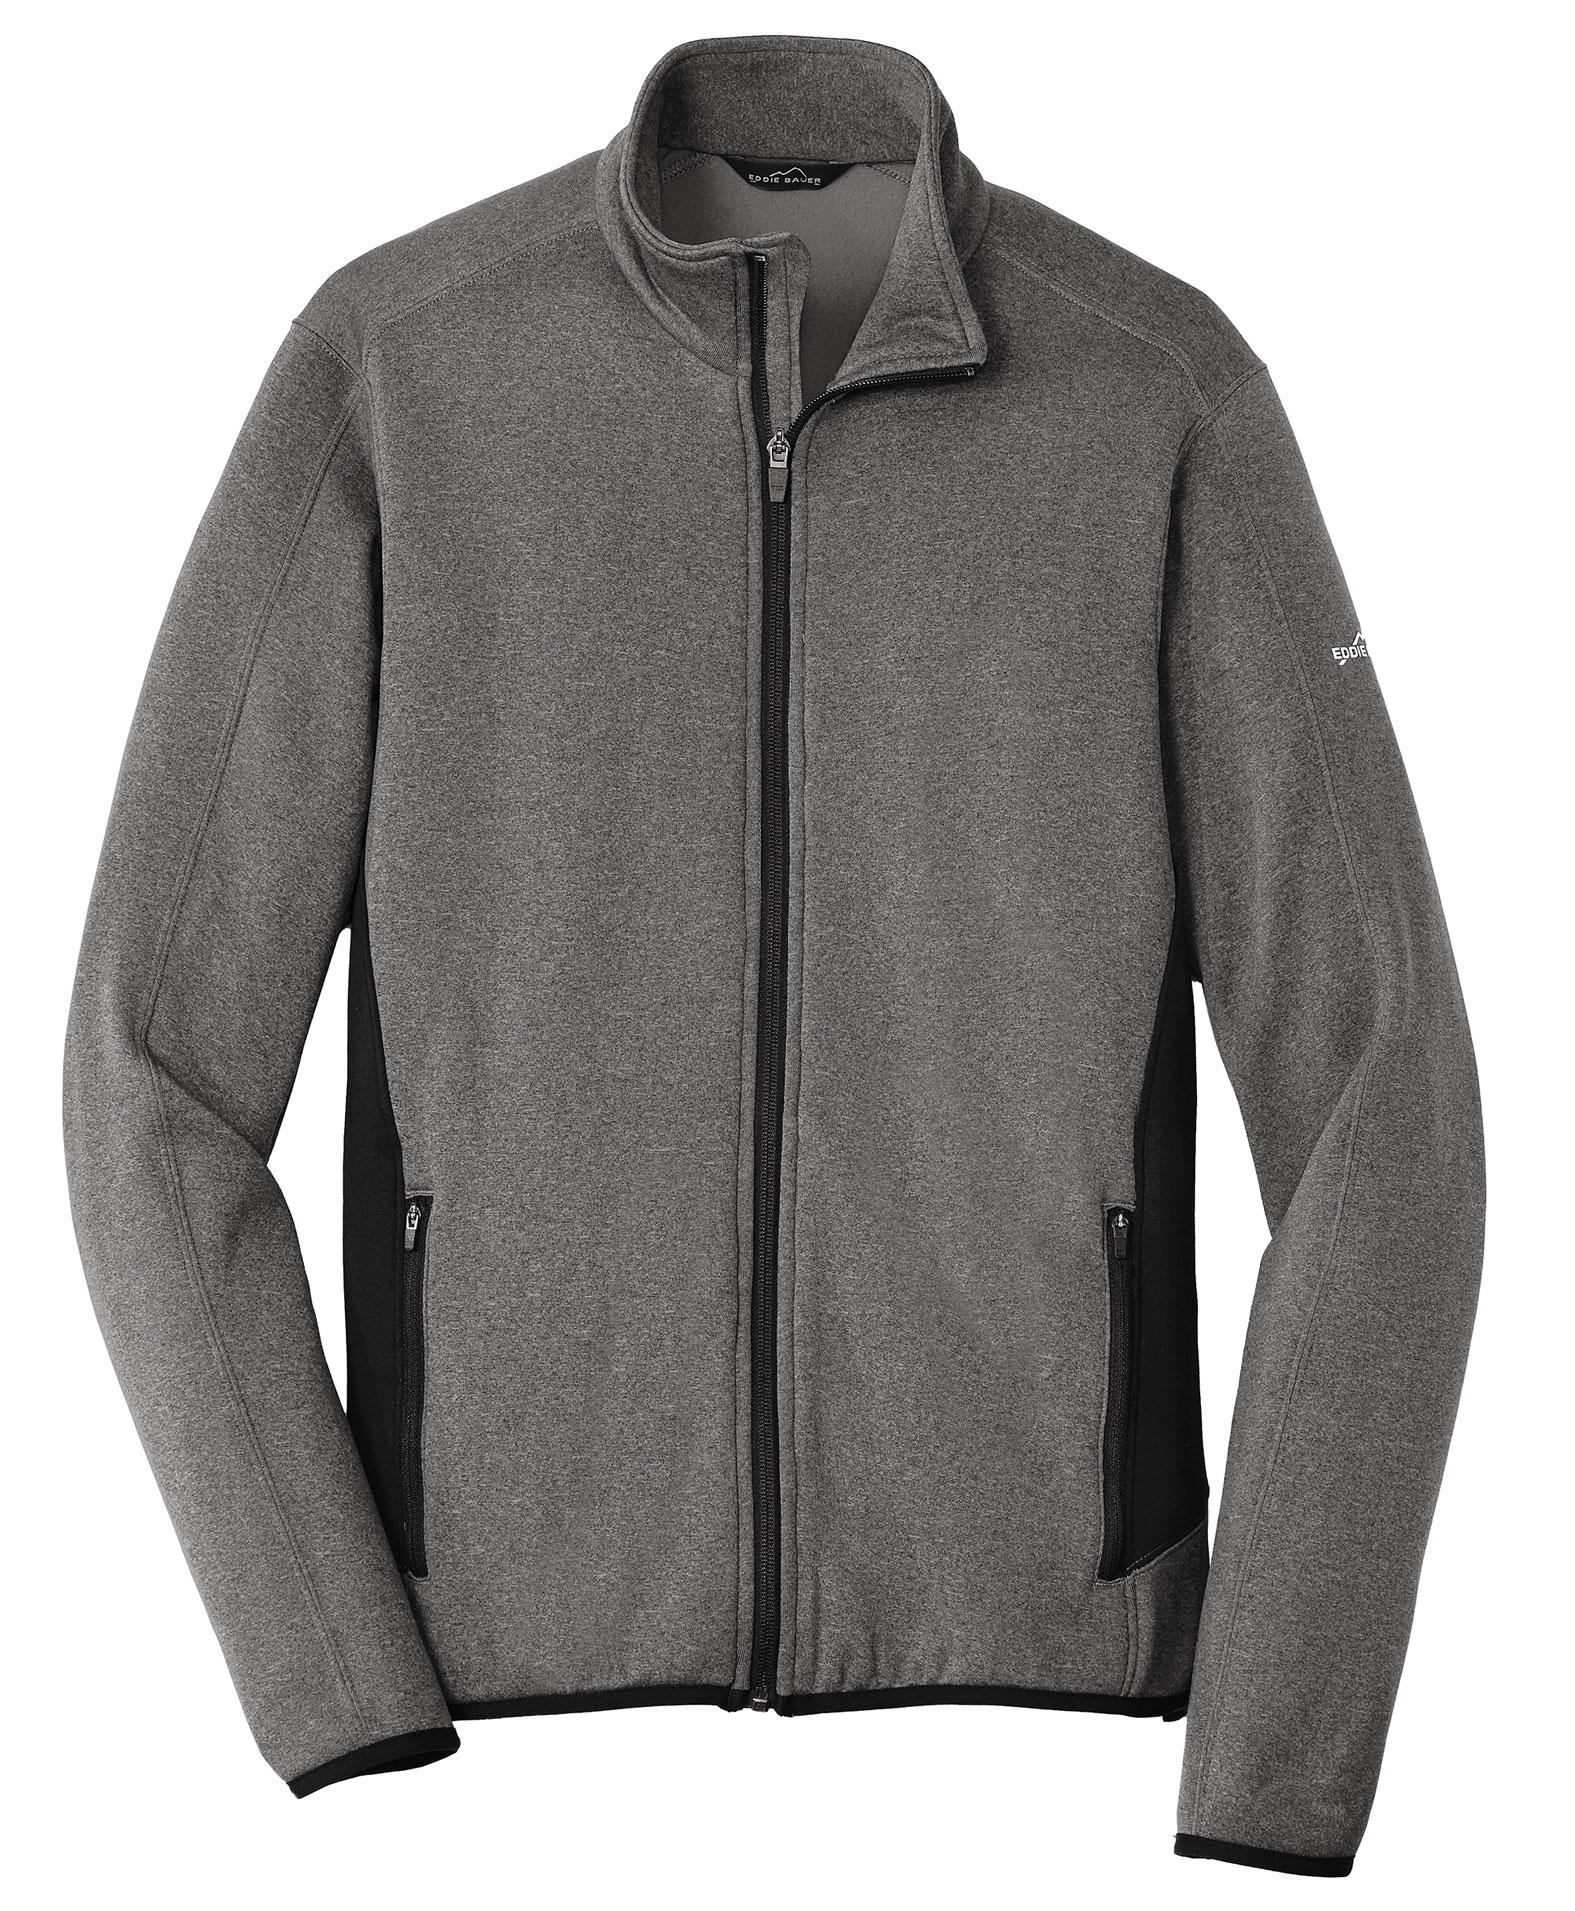 Eddie Bauer Mens Full-Zip Heather Stretch Fleece Jacket